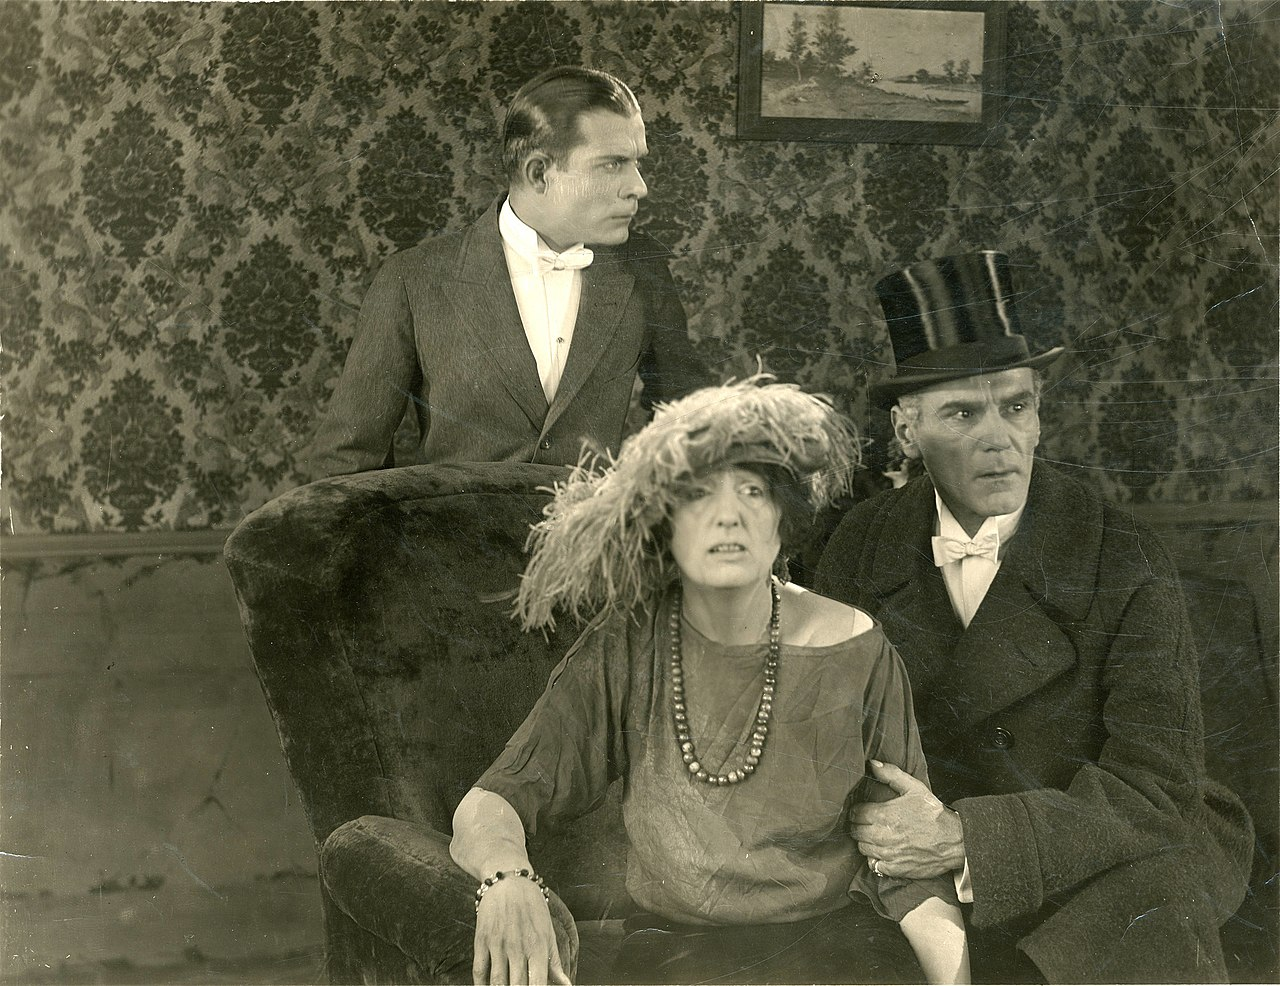 Pritchard at right with Earle Foxe and Florence Reed in the silent movie 'The Black Panther's Cub' (1921)